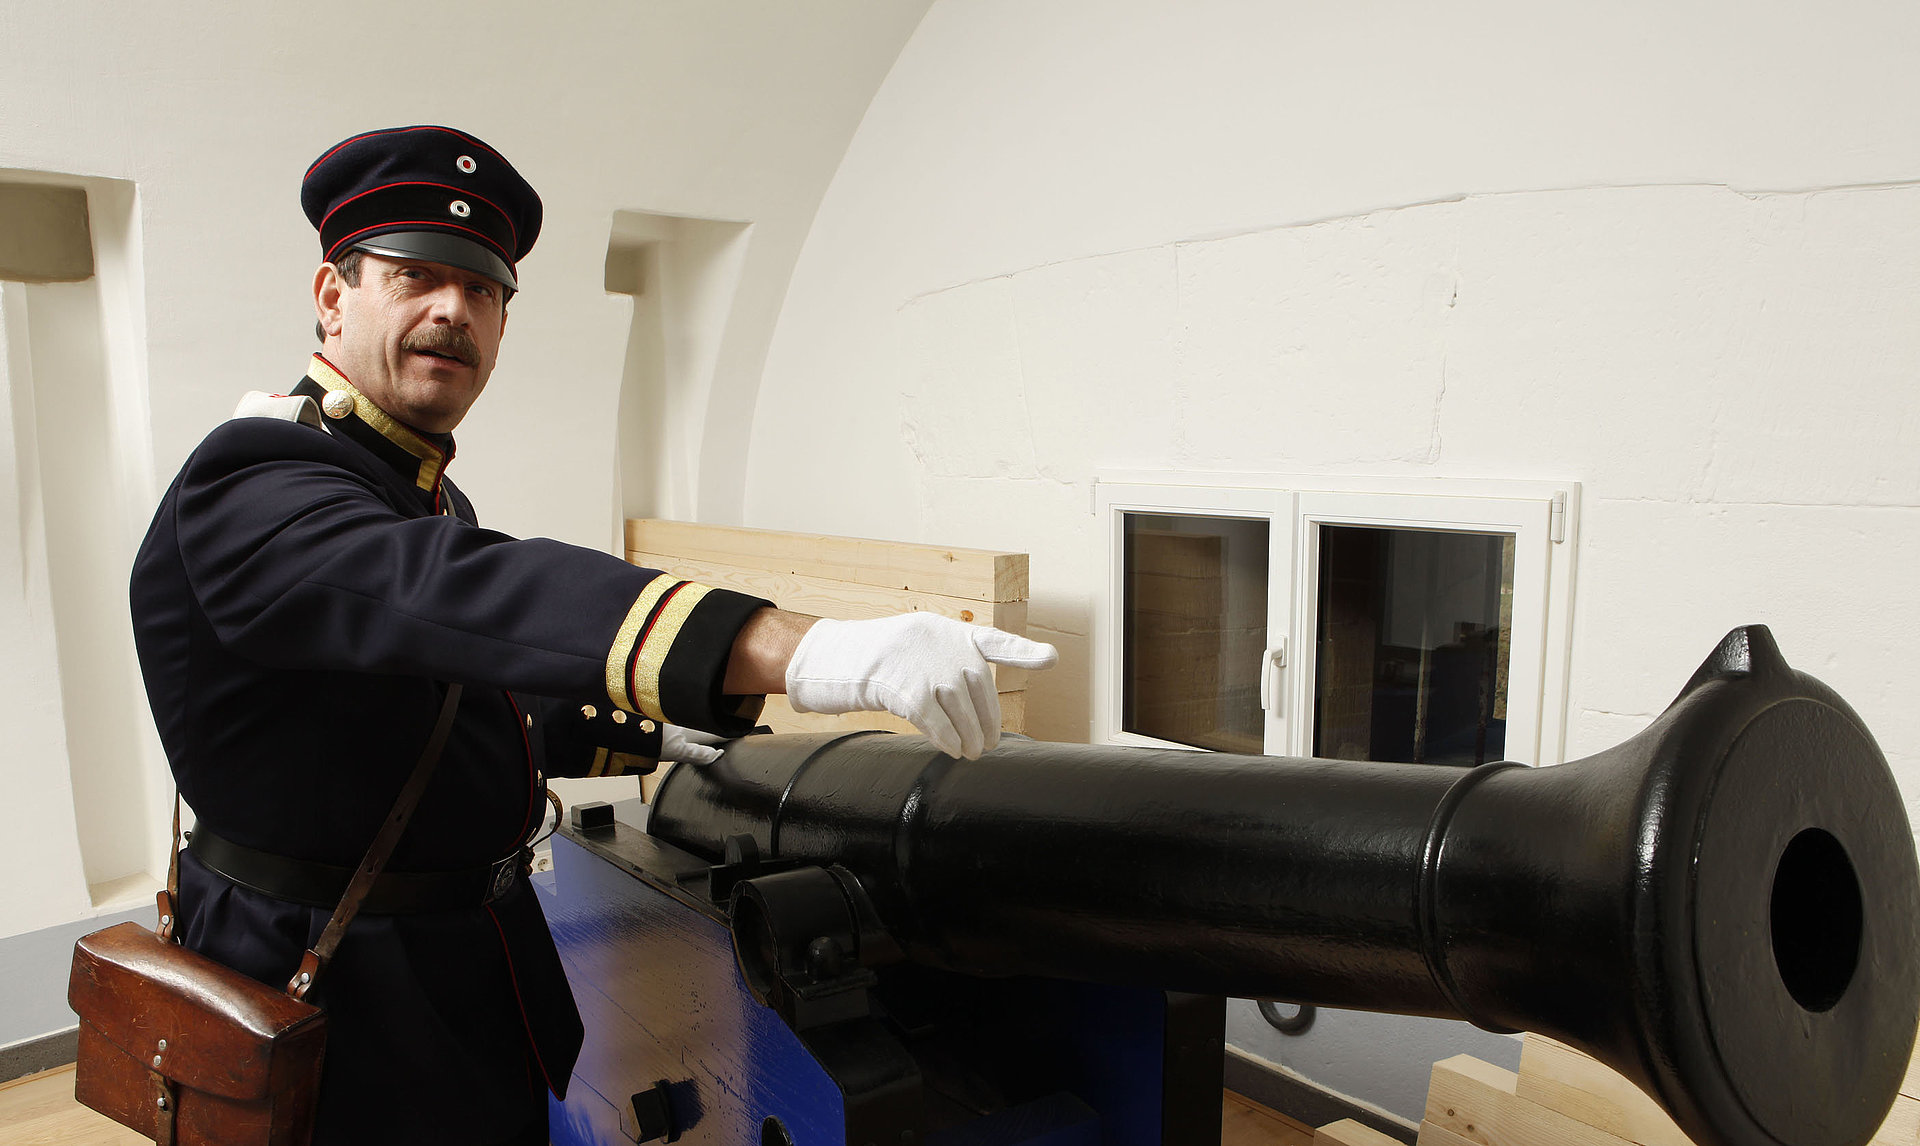 A fortress gunner in the State Museum of Koblenz, Romantic Rhine